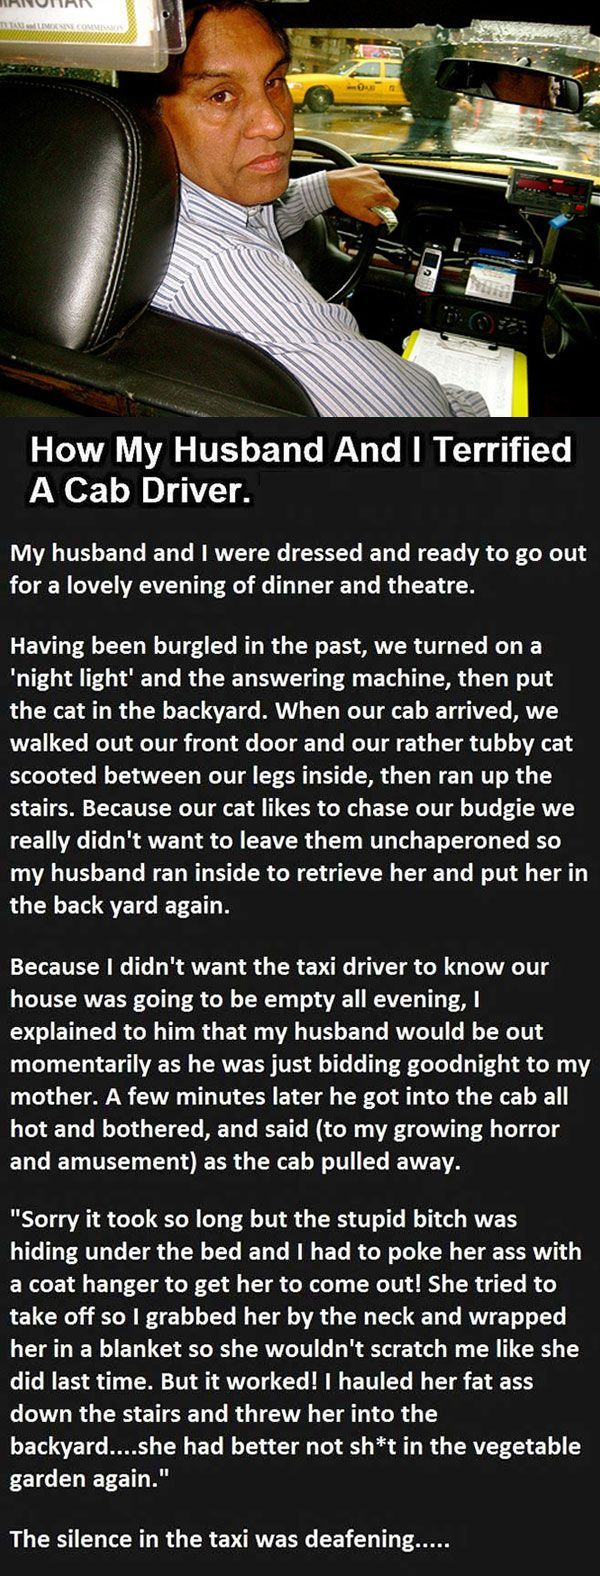 When my husband joined in the cab, this happened...